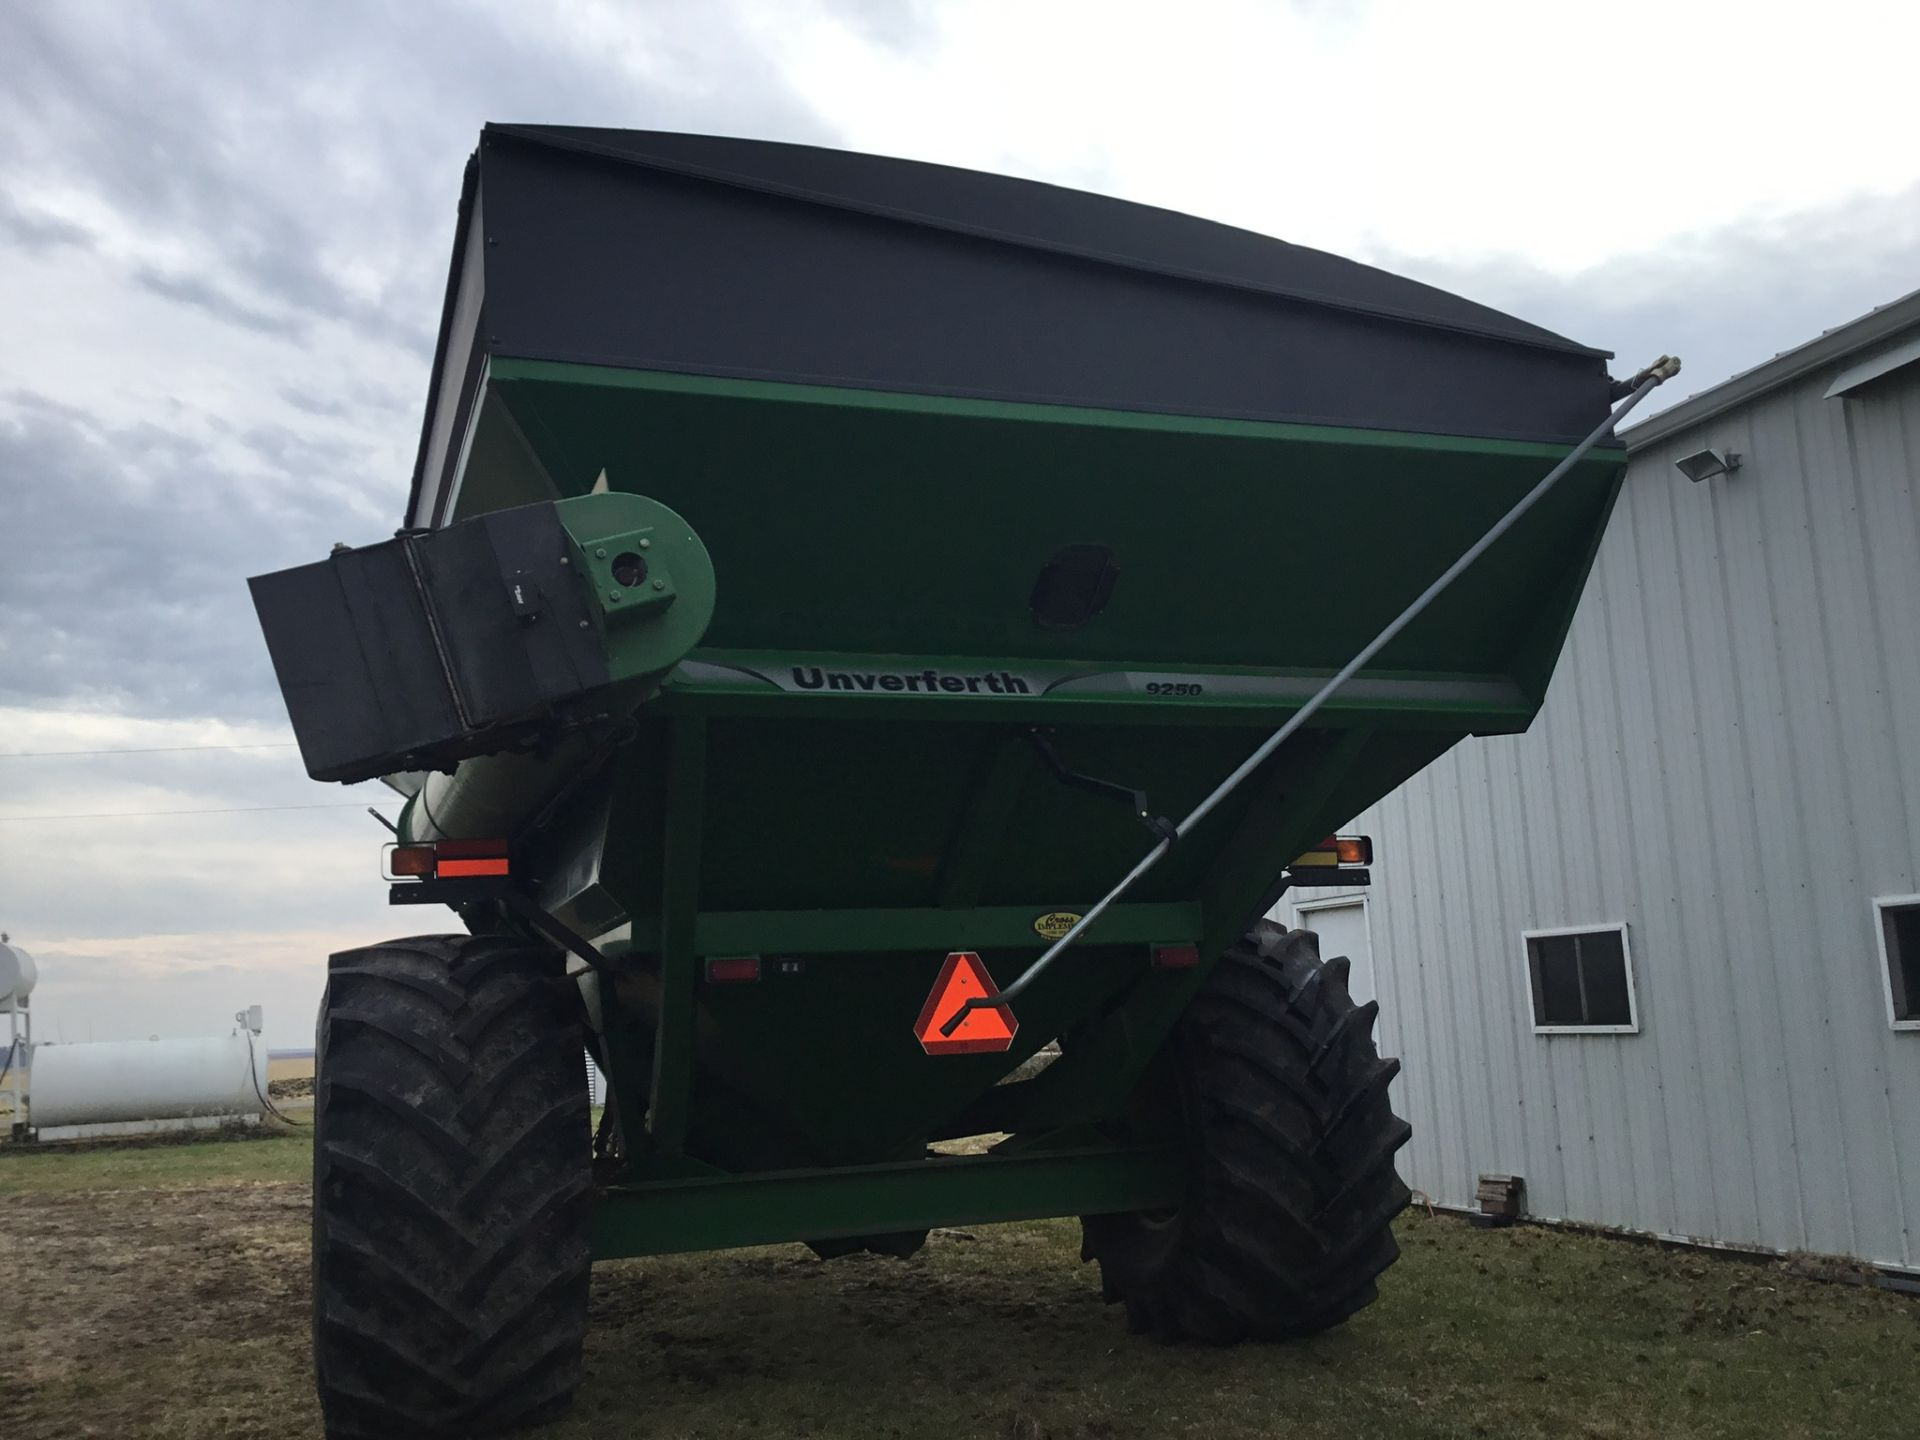 2009 Unverferth 9250 1,000 Bu. Auger Cart, Hydraulic Spout, 3 Cameras, Roll Tarp, New Augers, 900- - Image 2 of 15